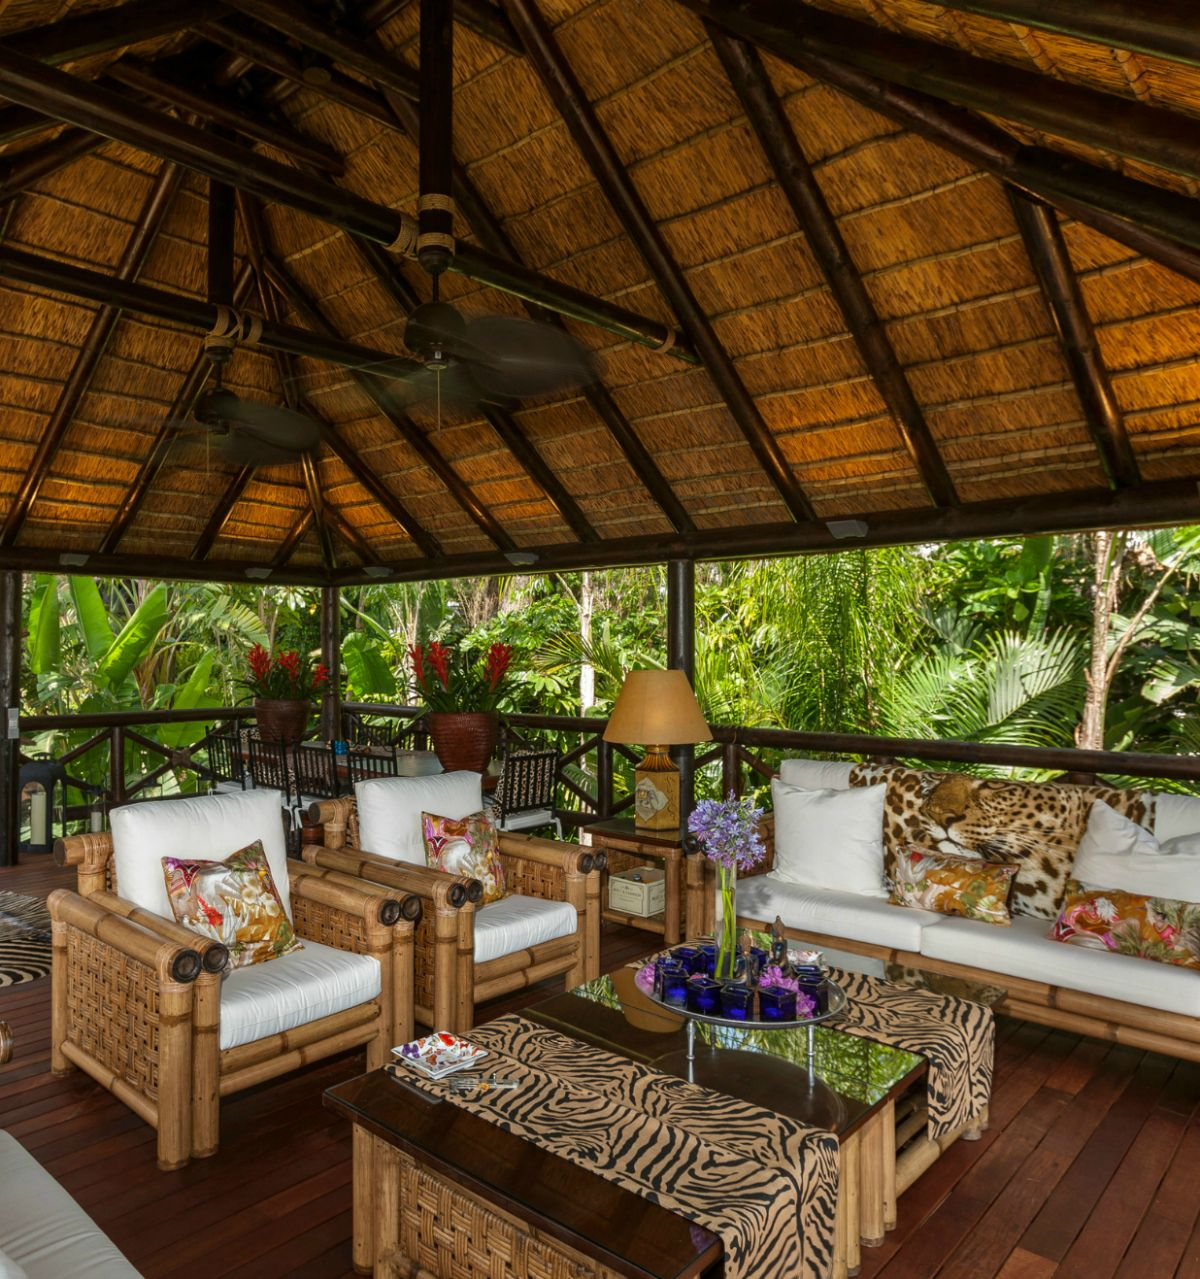 Outdoor Kitchen With Thatched Gazebo Outdoor In 2019: African Inspired Decor With Thatched Gazebo. Perfect For